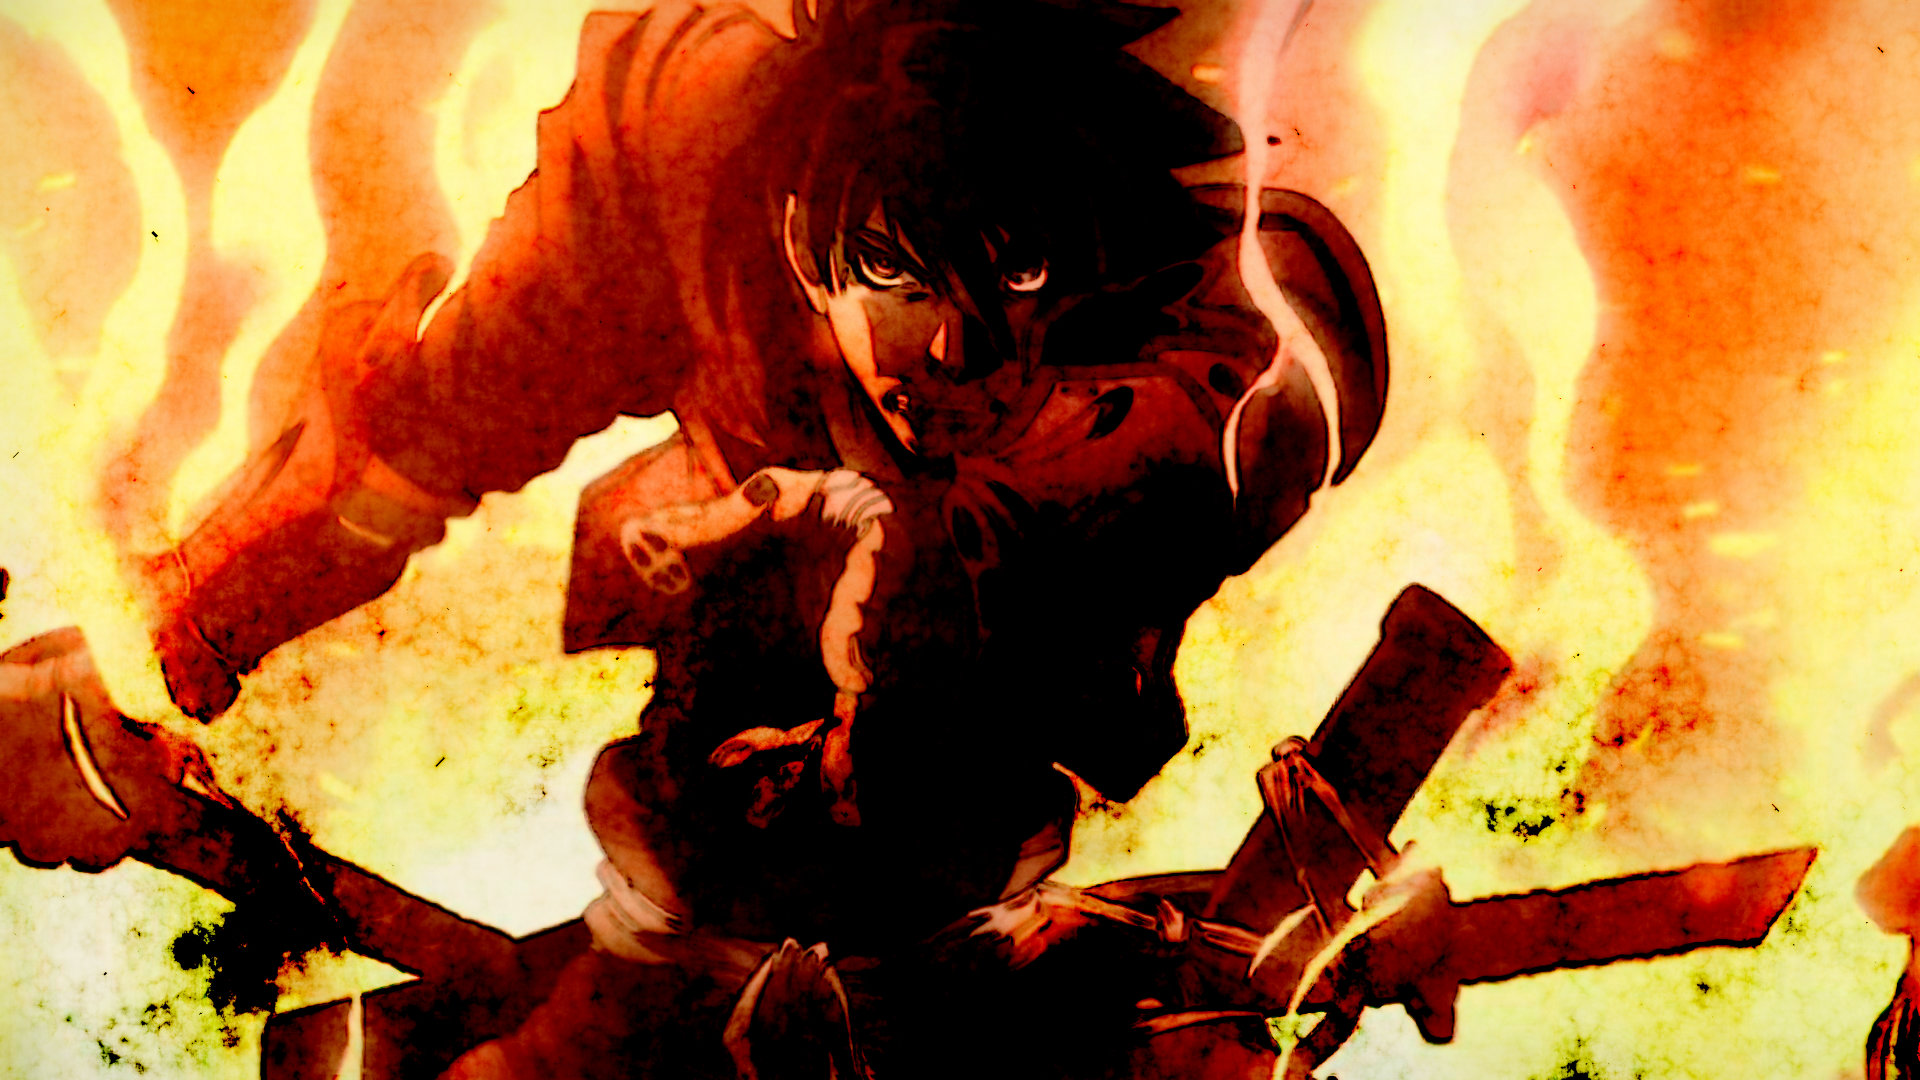 Download hd 1080p Drifters PC wallpaper ID:149499 for free